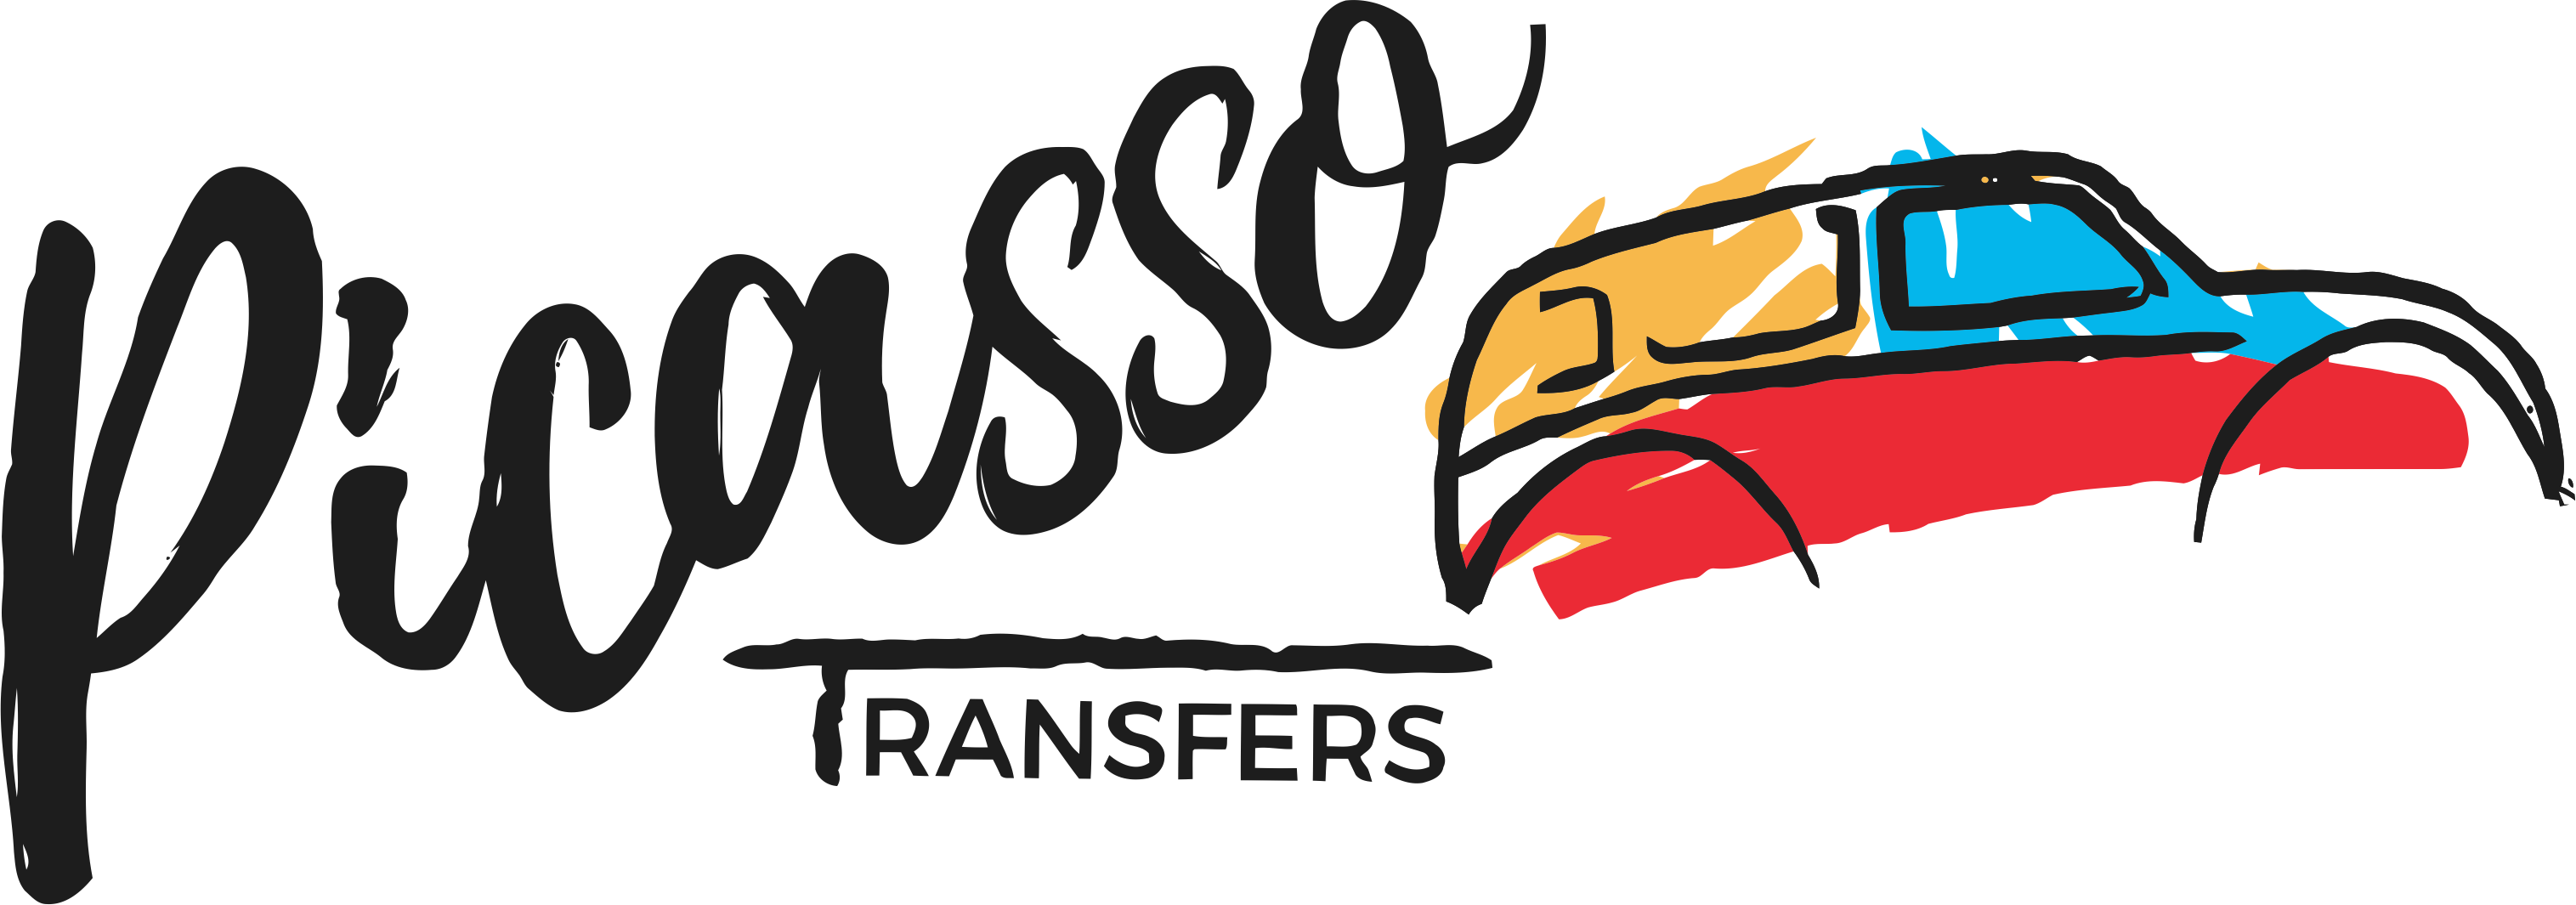 Picasso Transfers | Contact us - Picasso Transfers